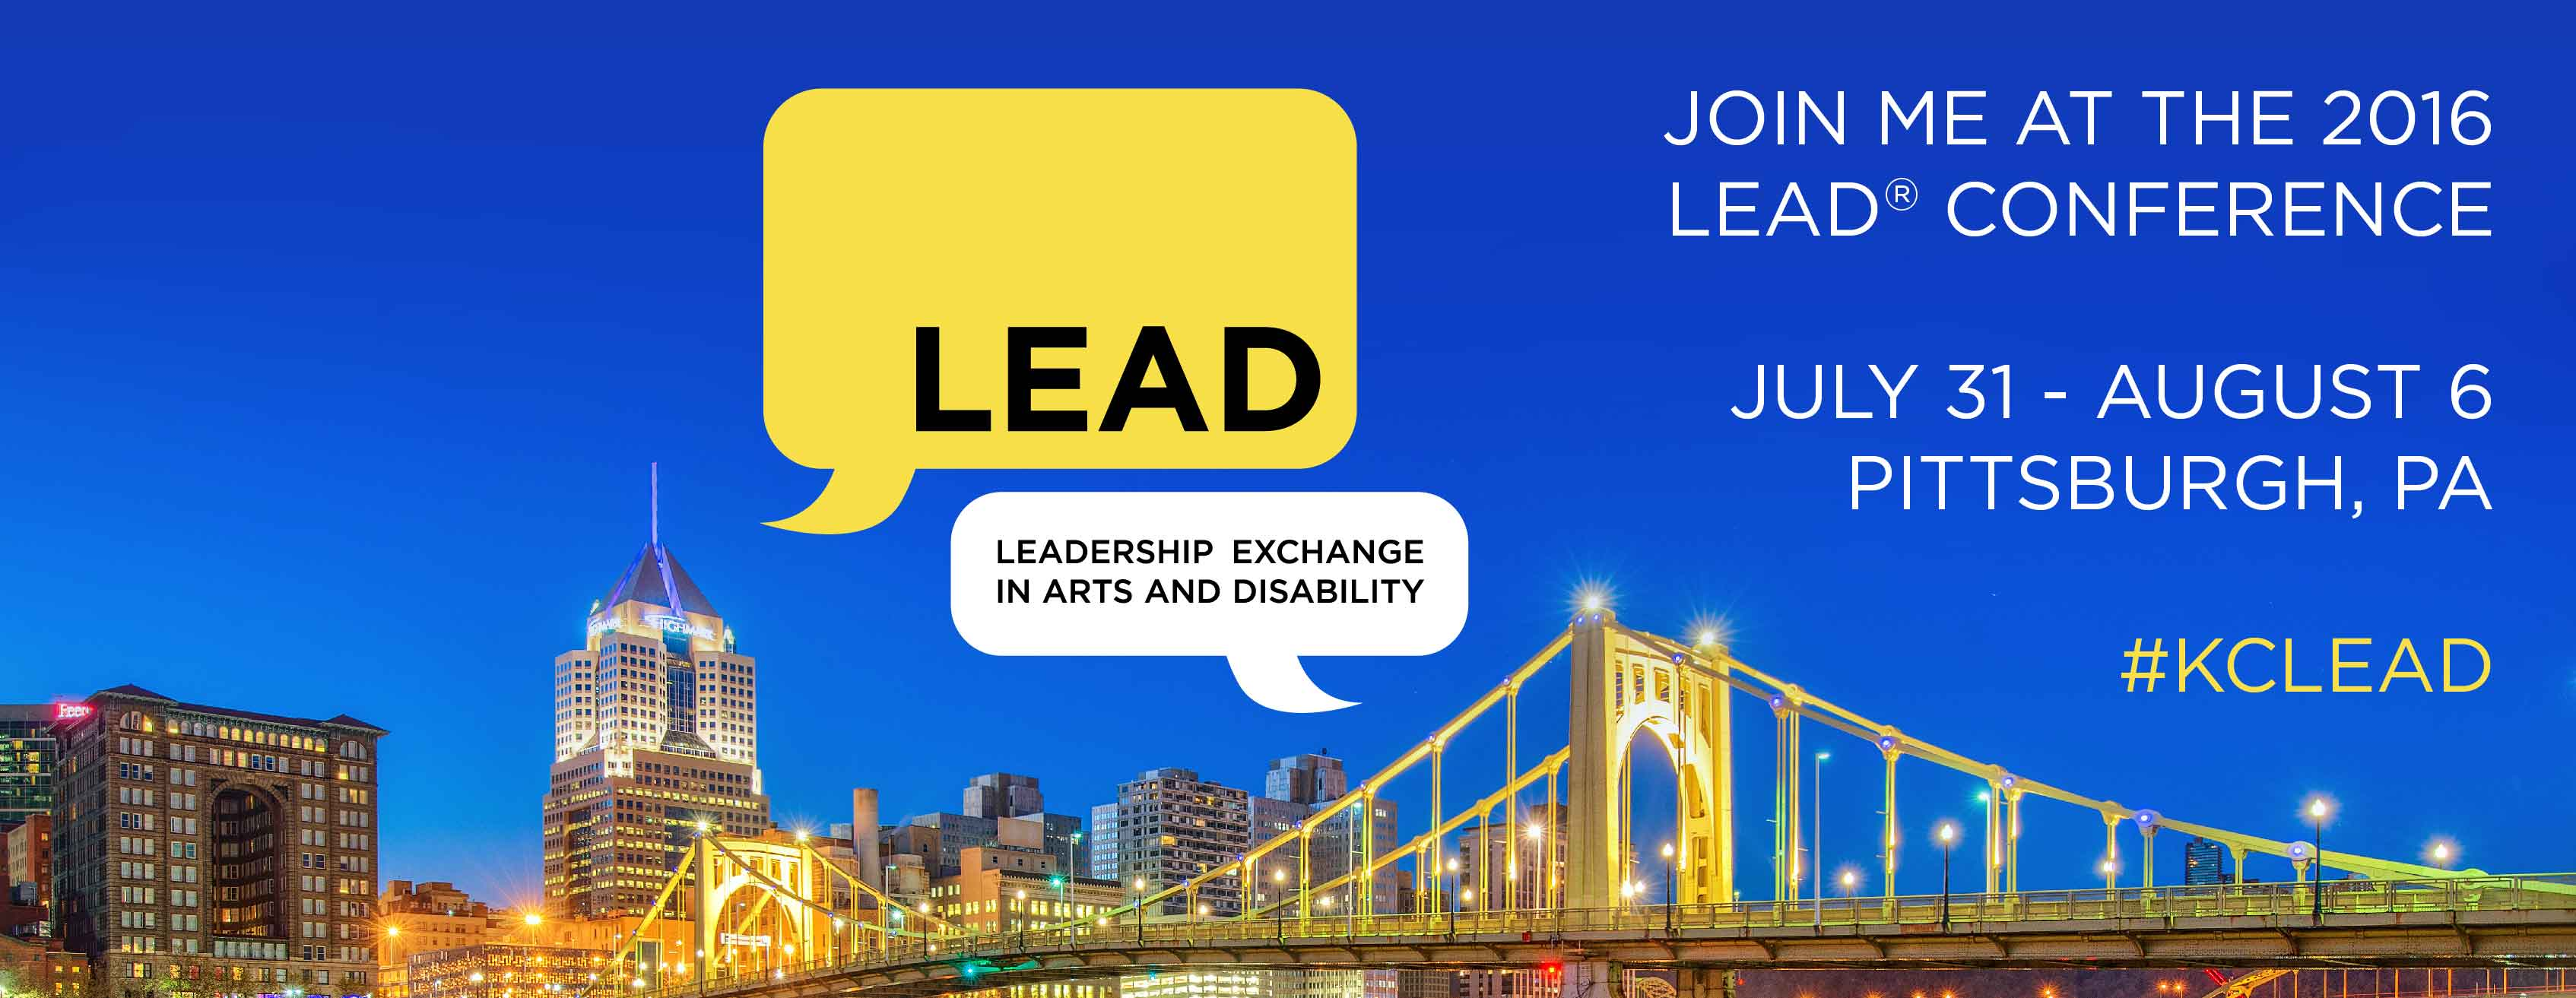 Facebook Cover Image graphic with nighttime photo of Pittsburgh, LEAD chat bubble logo and the text: Join me at the 2016 LEAD Conference July 31 - August 6, 2016 Pittsburgh, PA.  Hashtag kclead